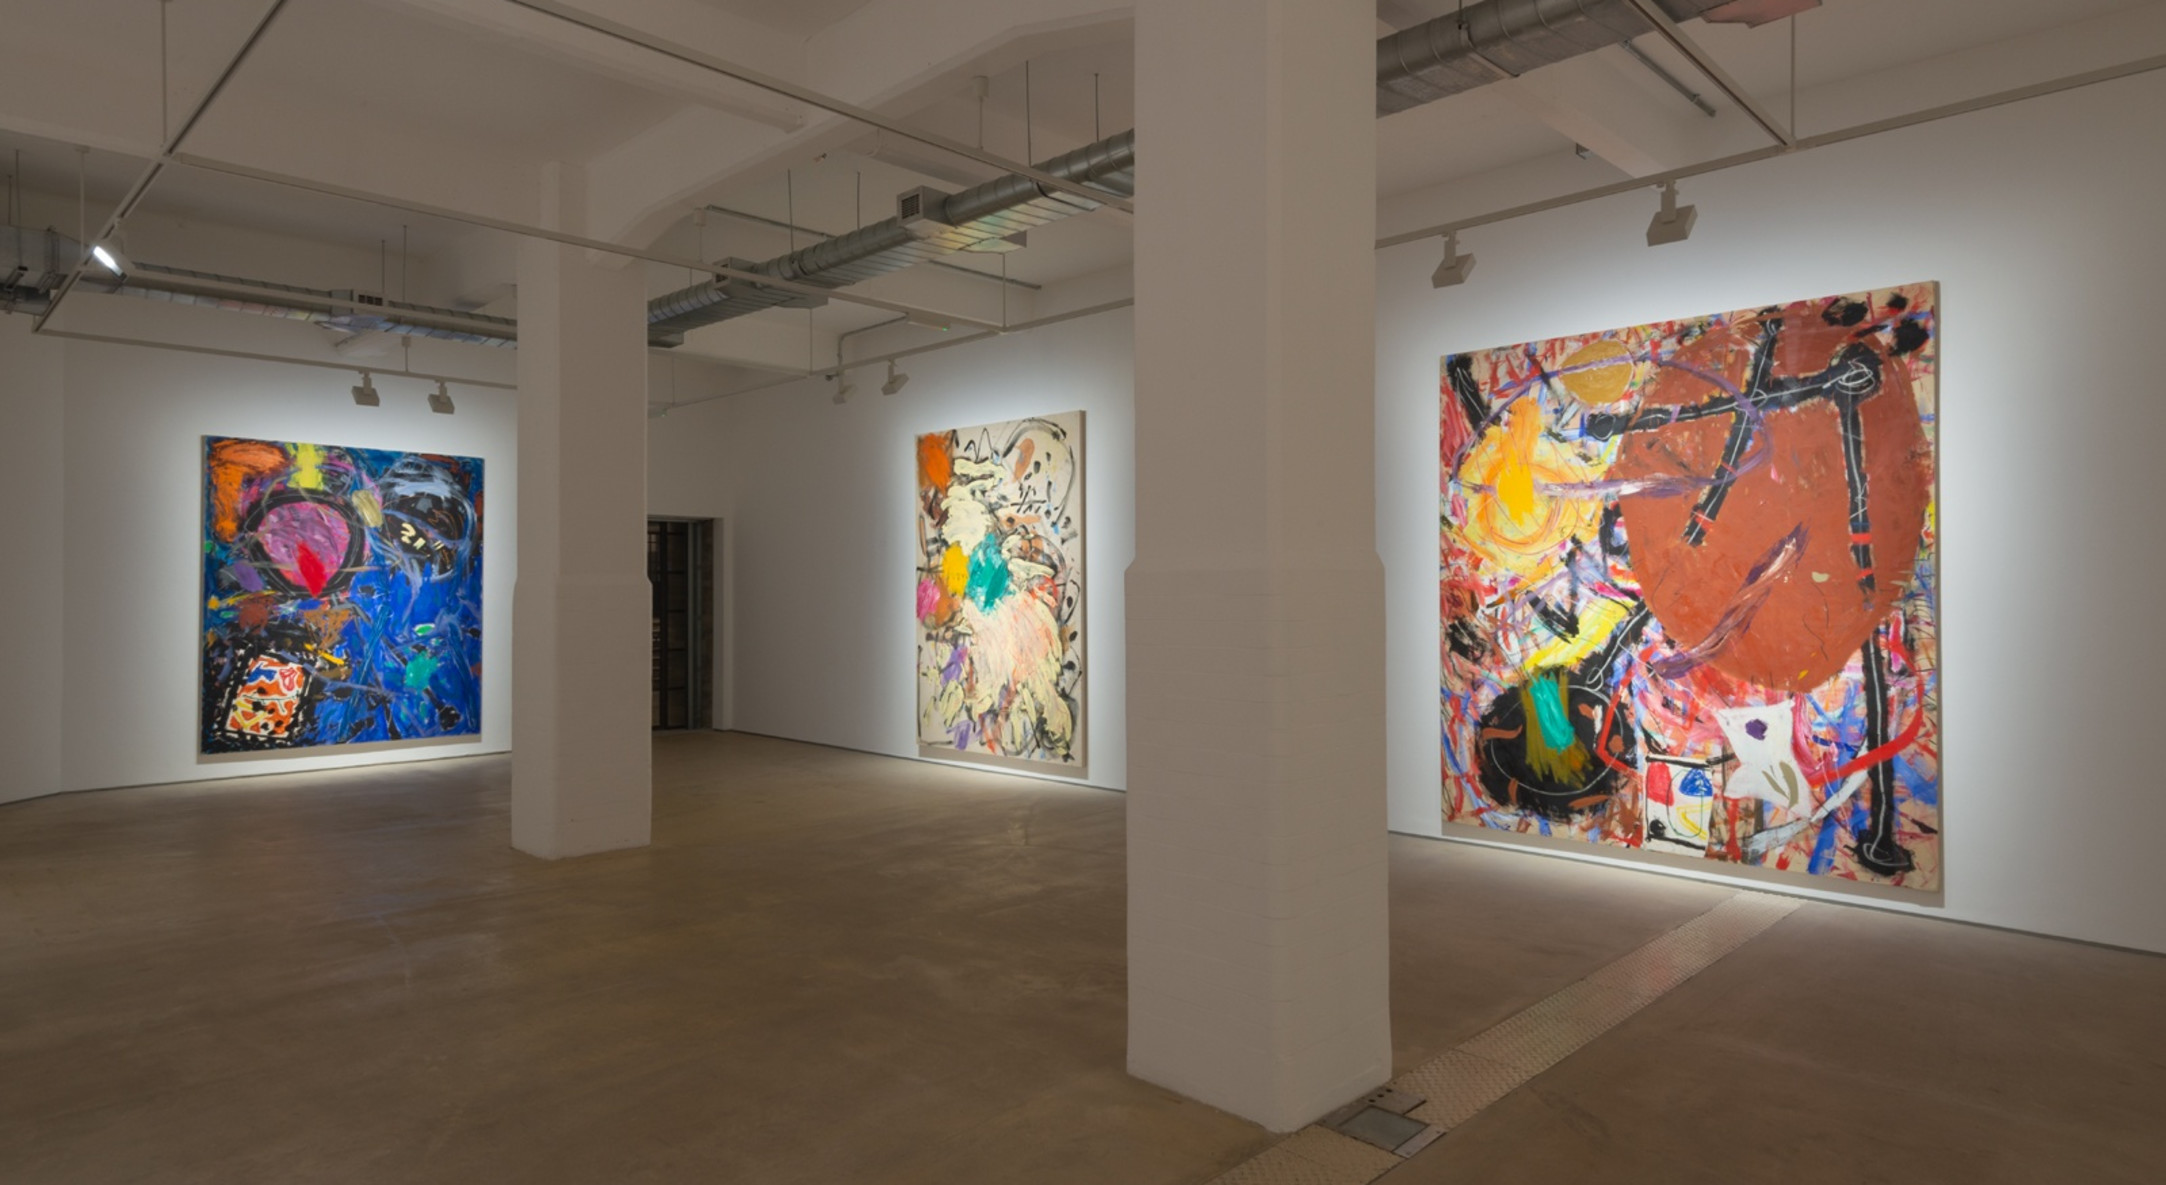 Installation view of Basil Beattie, Cause & Effect at Hales London, 2020